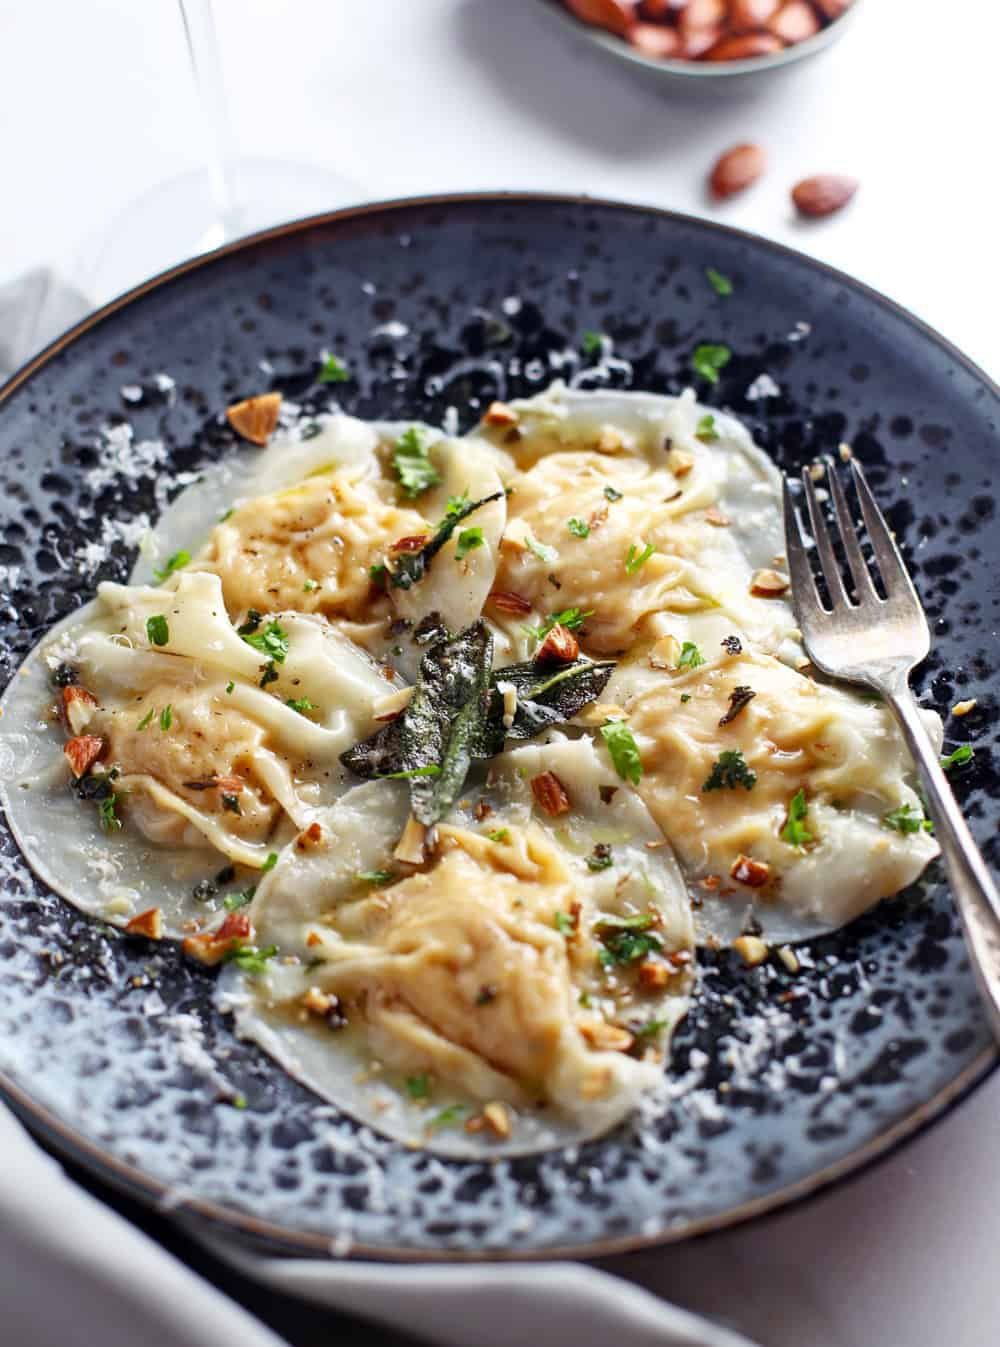 Smoked Pumpkin Ravioli, made with smoked-roasted pumpkin puree, wrapped in wonton wrappers, and topped with an indulgent and savory sage butter sauce with smoked almonds. Pure deliciousness!